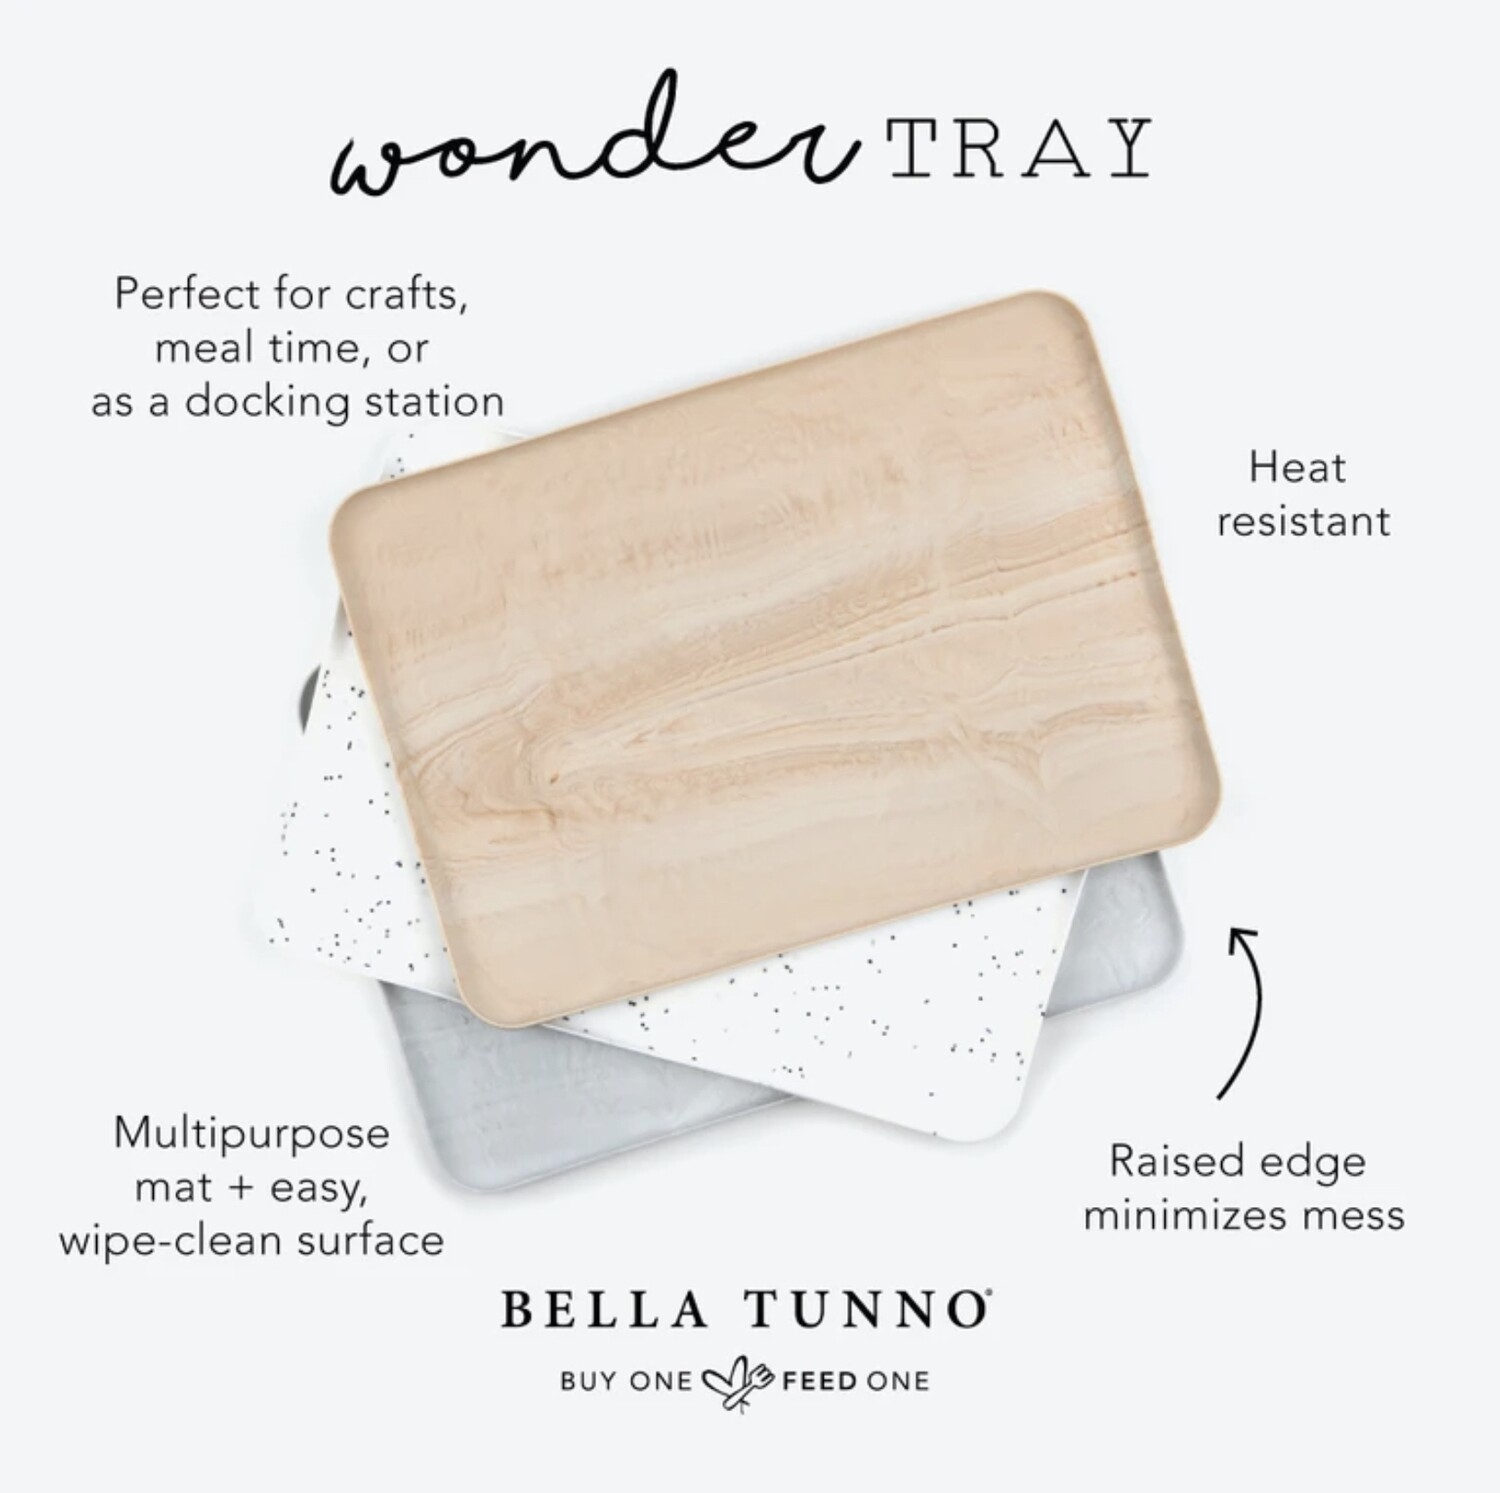 Bella Tunno Wonder Tray